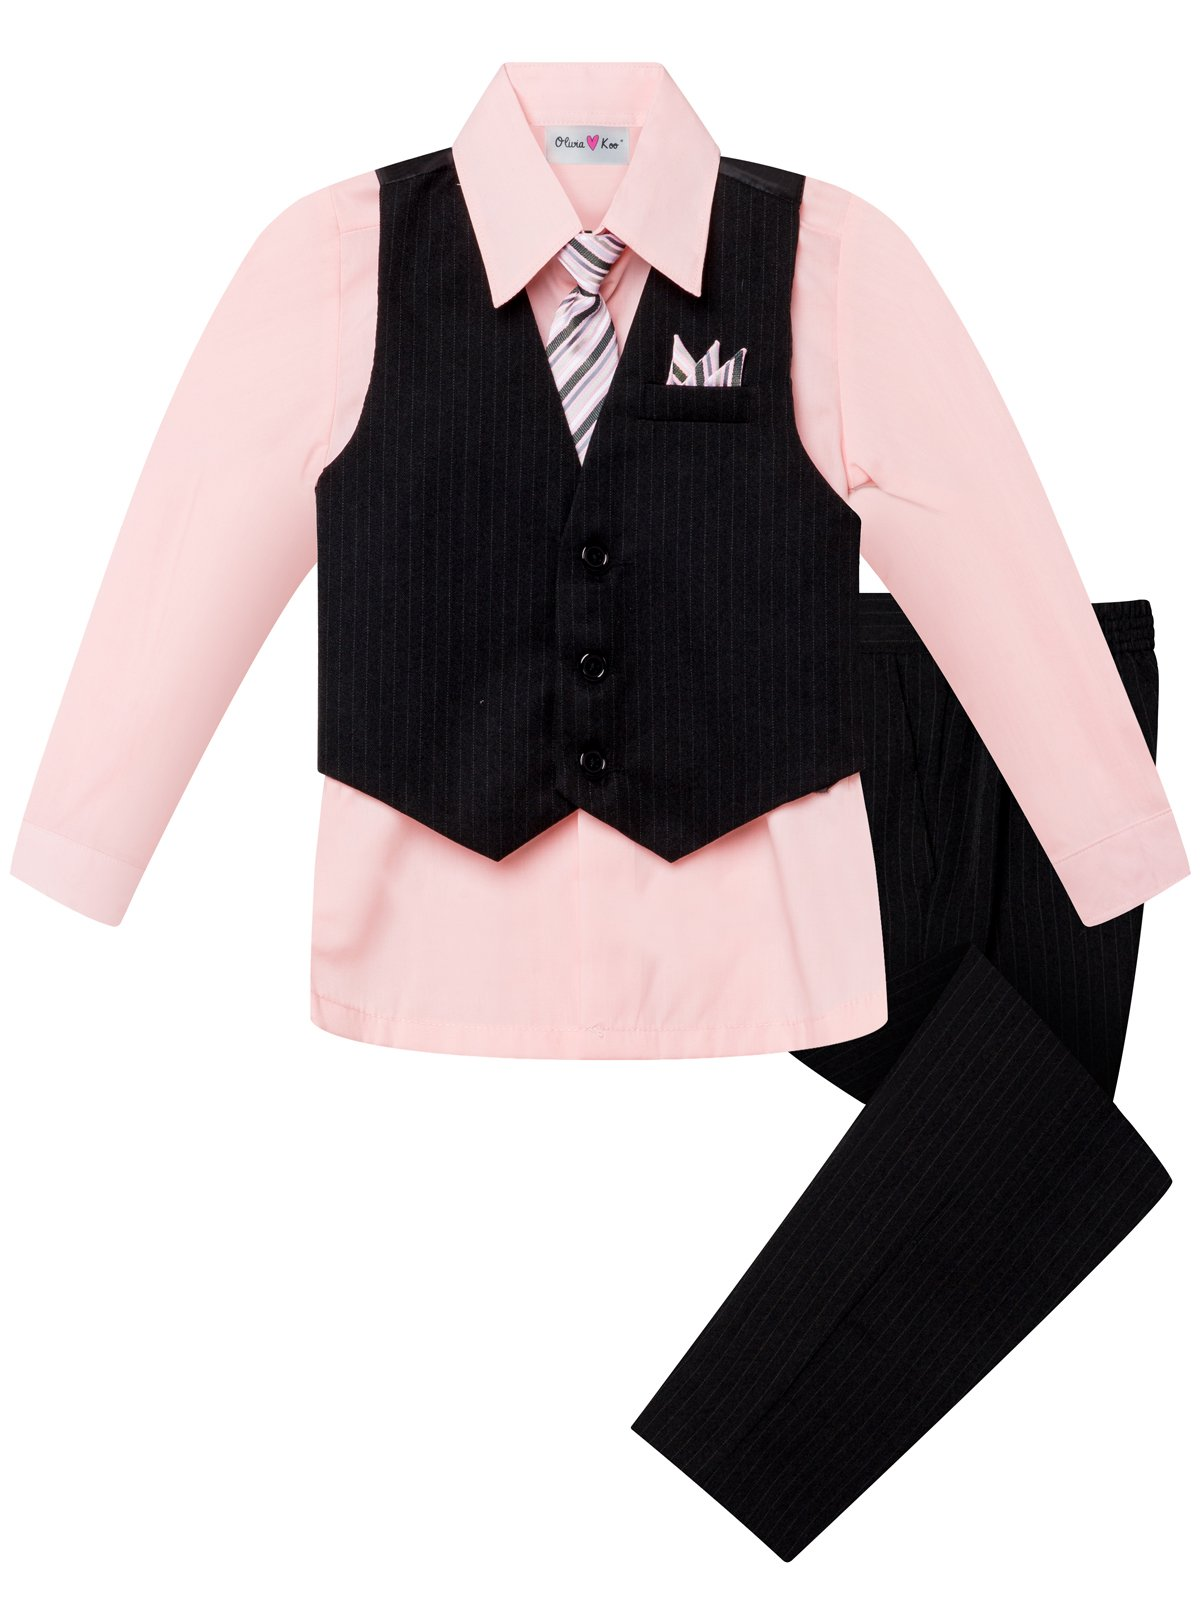 OLIVIA KOO Boy's Colored Shirt Pinstripe 4 Piece Pinstriped Vest Set Size Infant-Boy 20